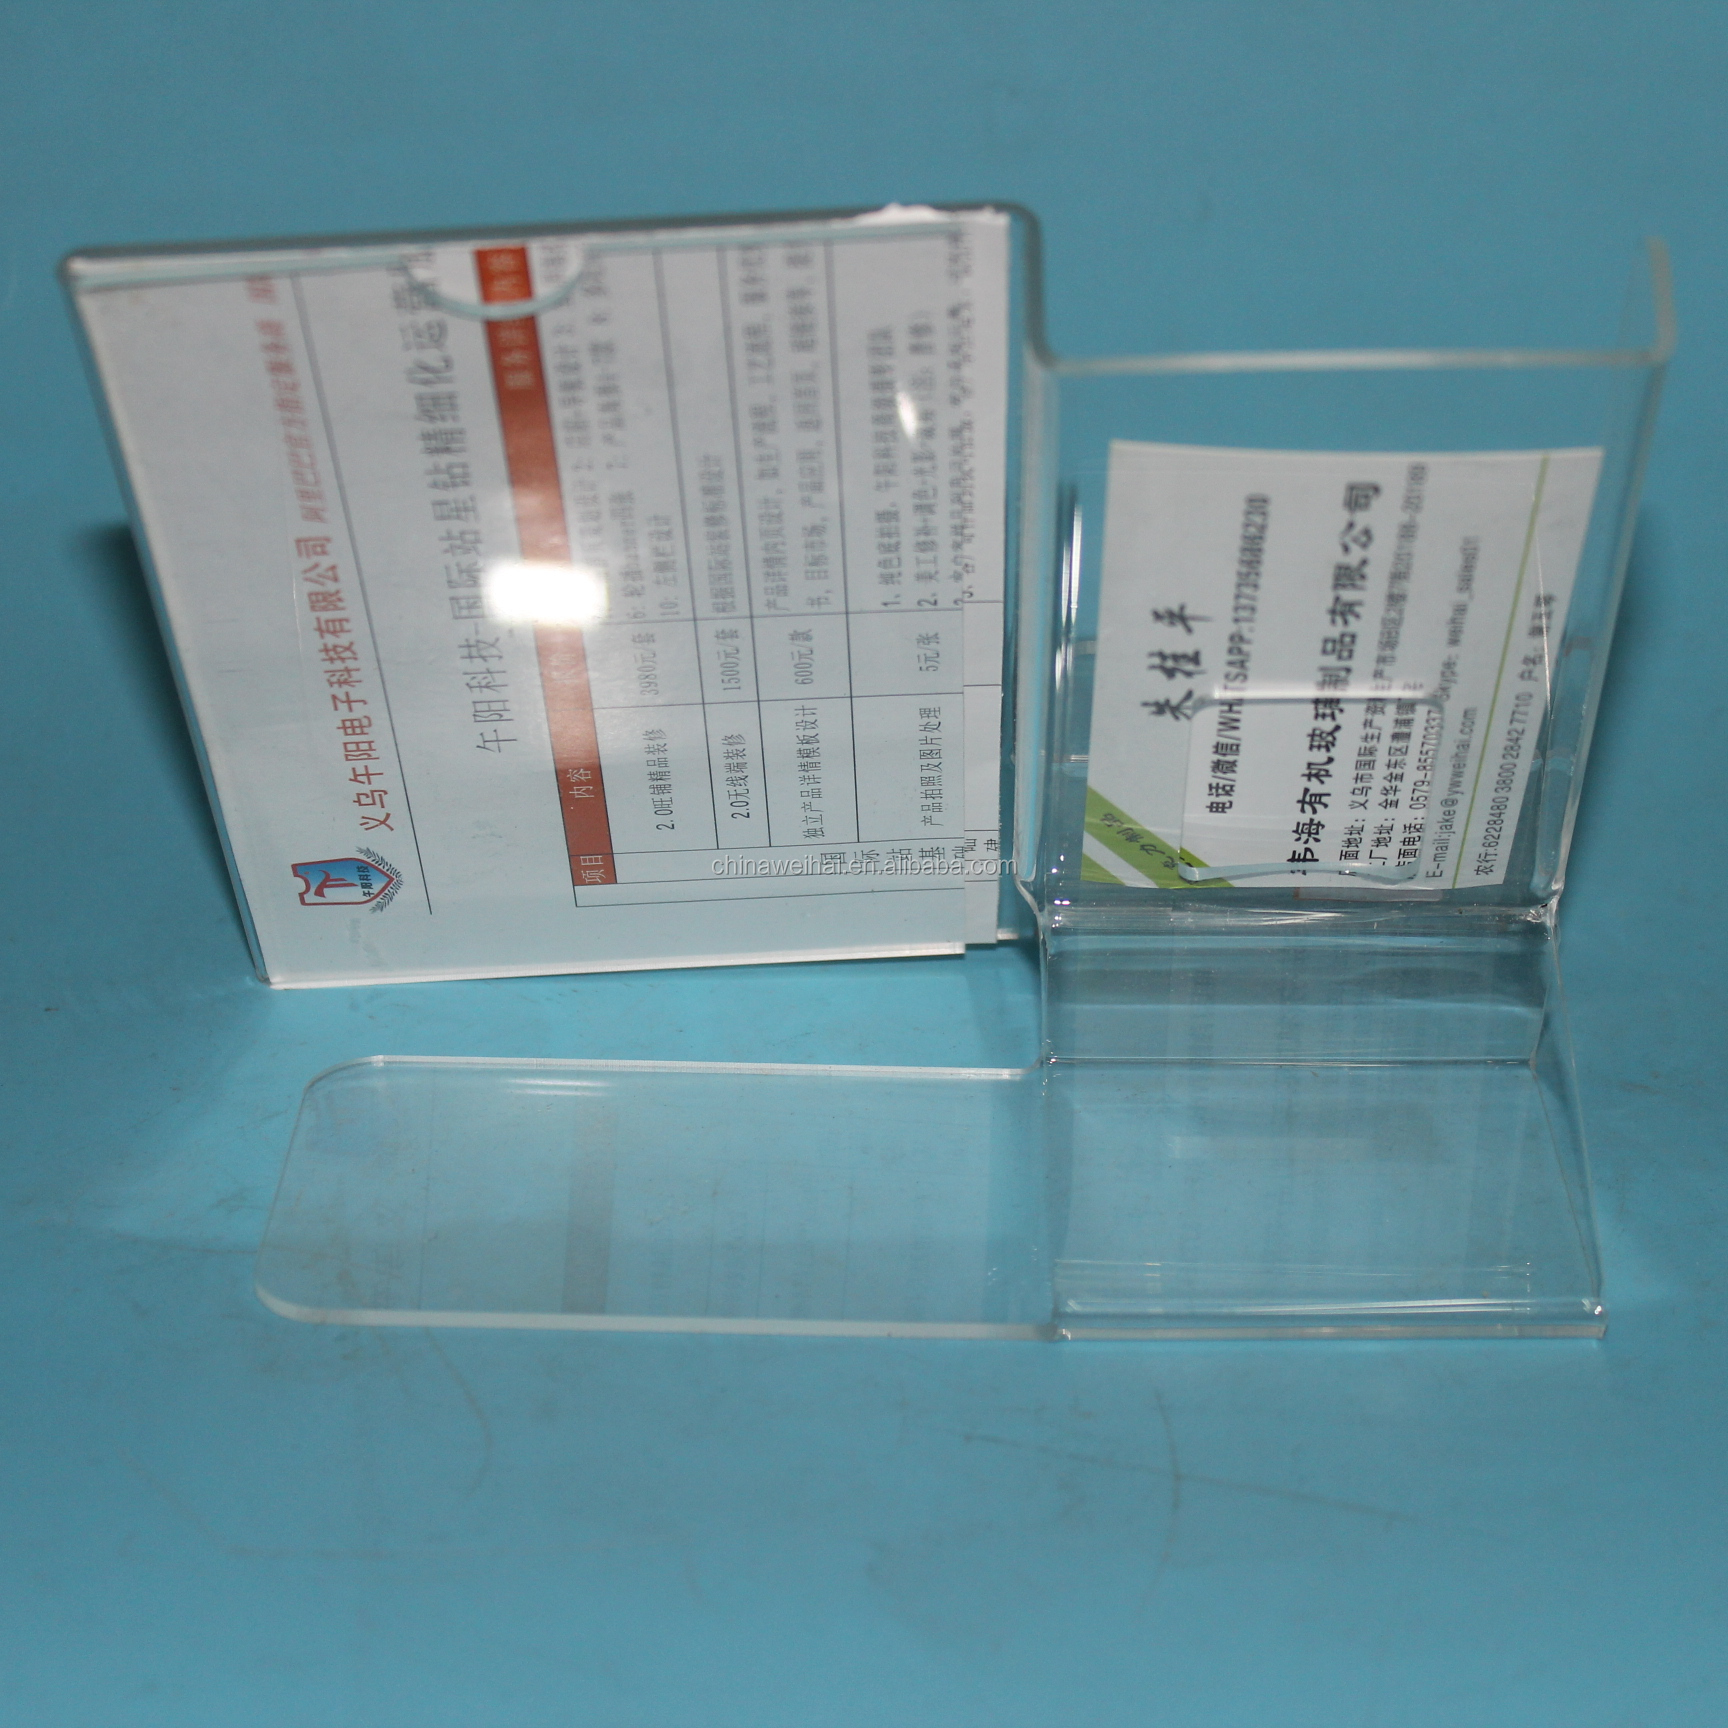 Clear Acrylic Mobile Phone Display Stand